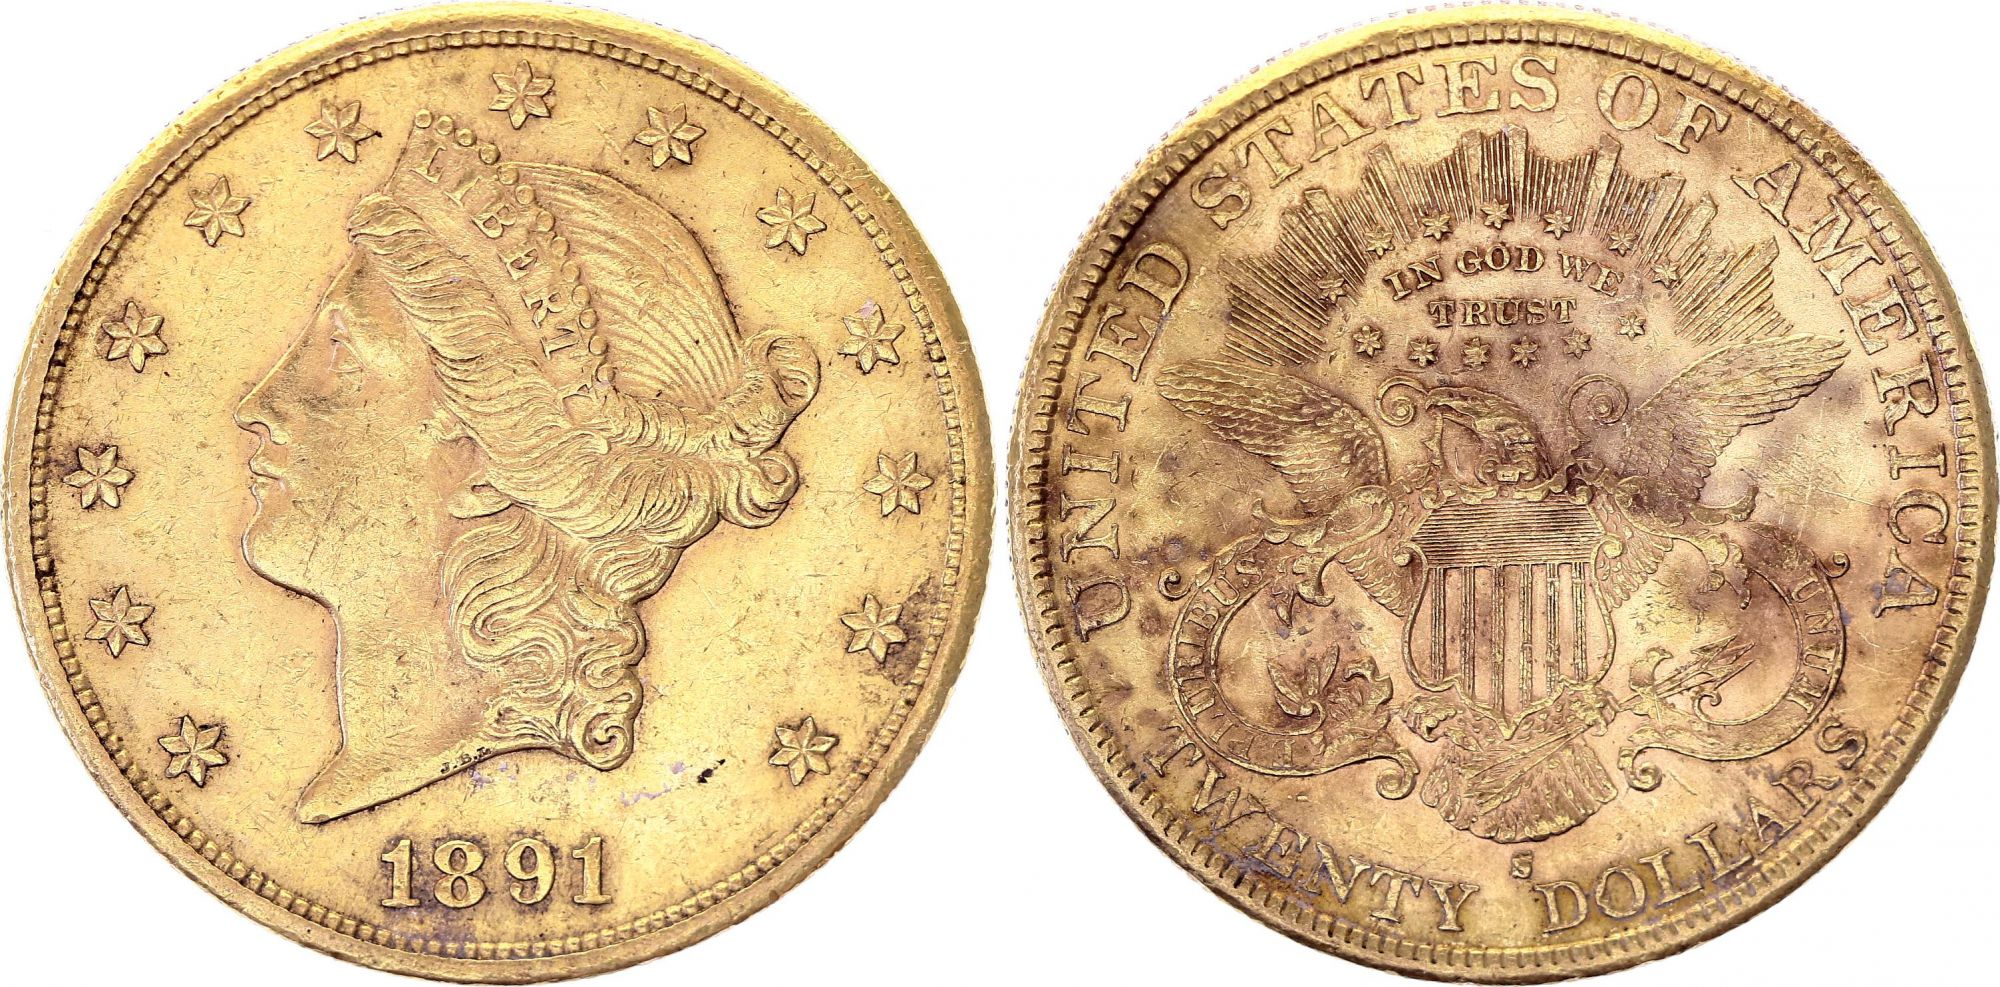 USA 20 Dollars Liberty - Aigle Coronet Head - 1891 S San Francisco Or